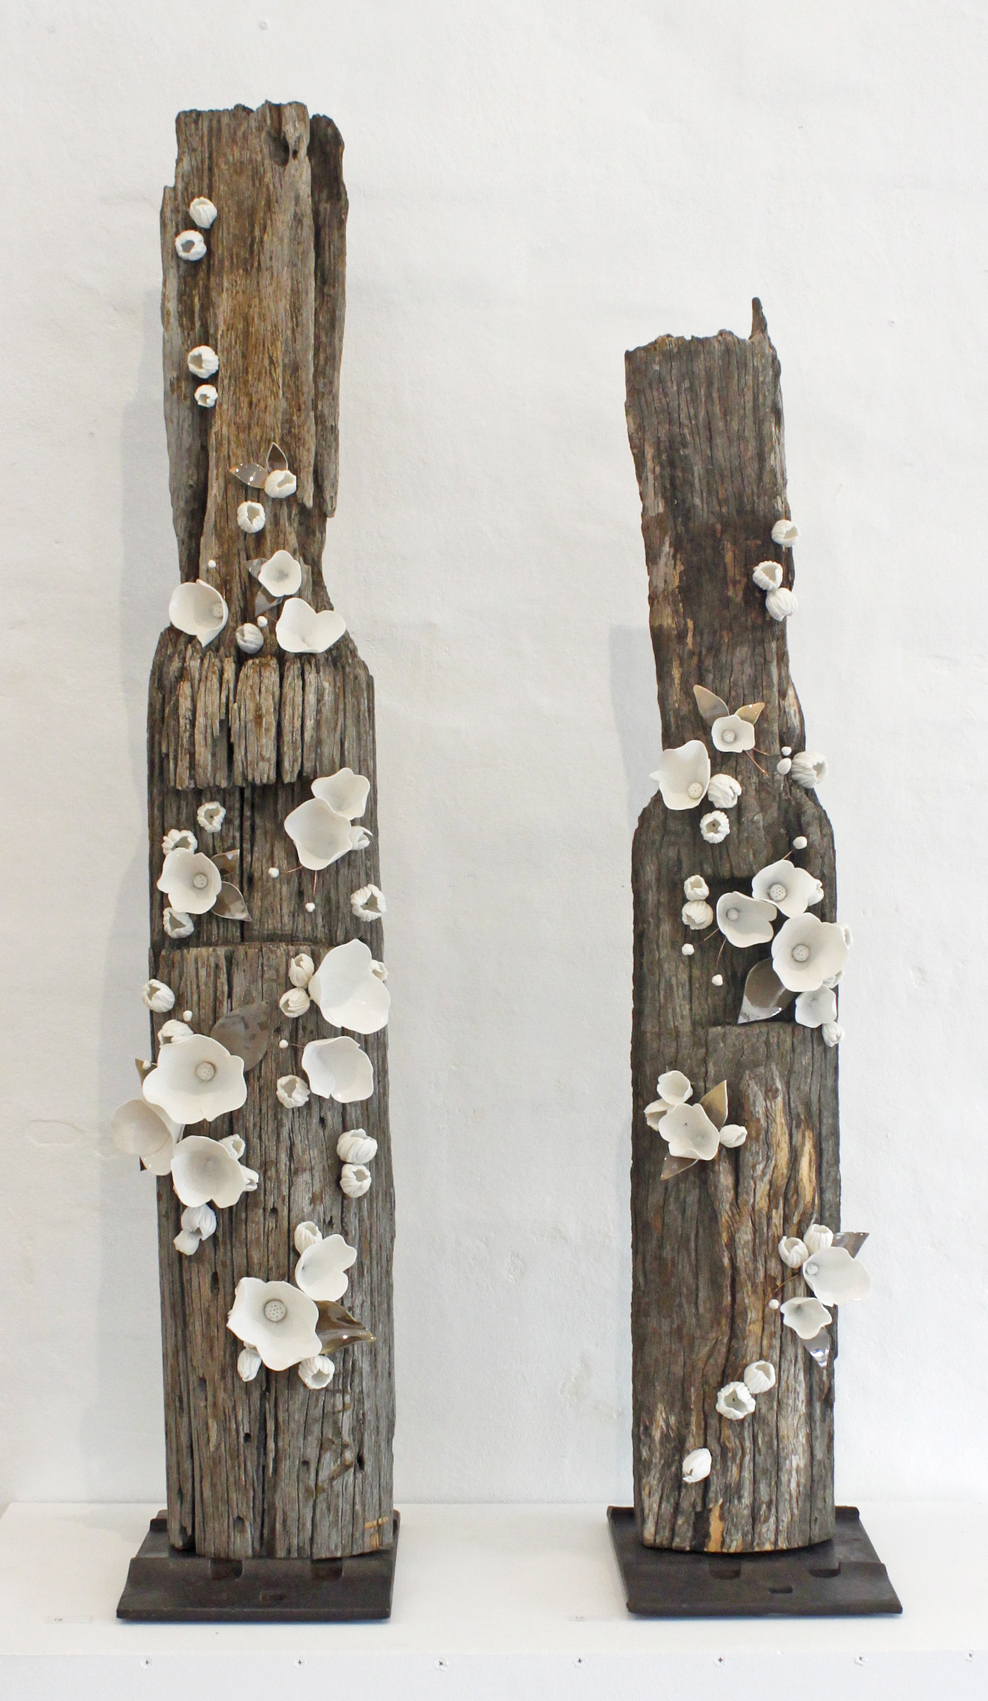 Amy Hick, Fence post no. 3 & 4, 2015.  Hand built imperial porcelain, weathered fence post, clear glaze, bronze glaze, copper wire, no.3 approximately 120x21x18cm, no.4 approximatelyb105x19x18  Photography: Madeline Young